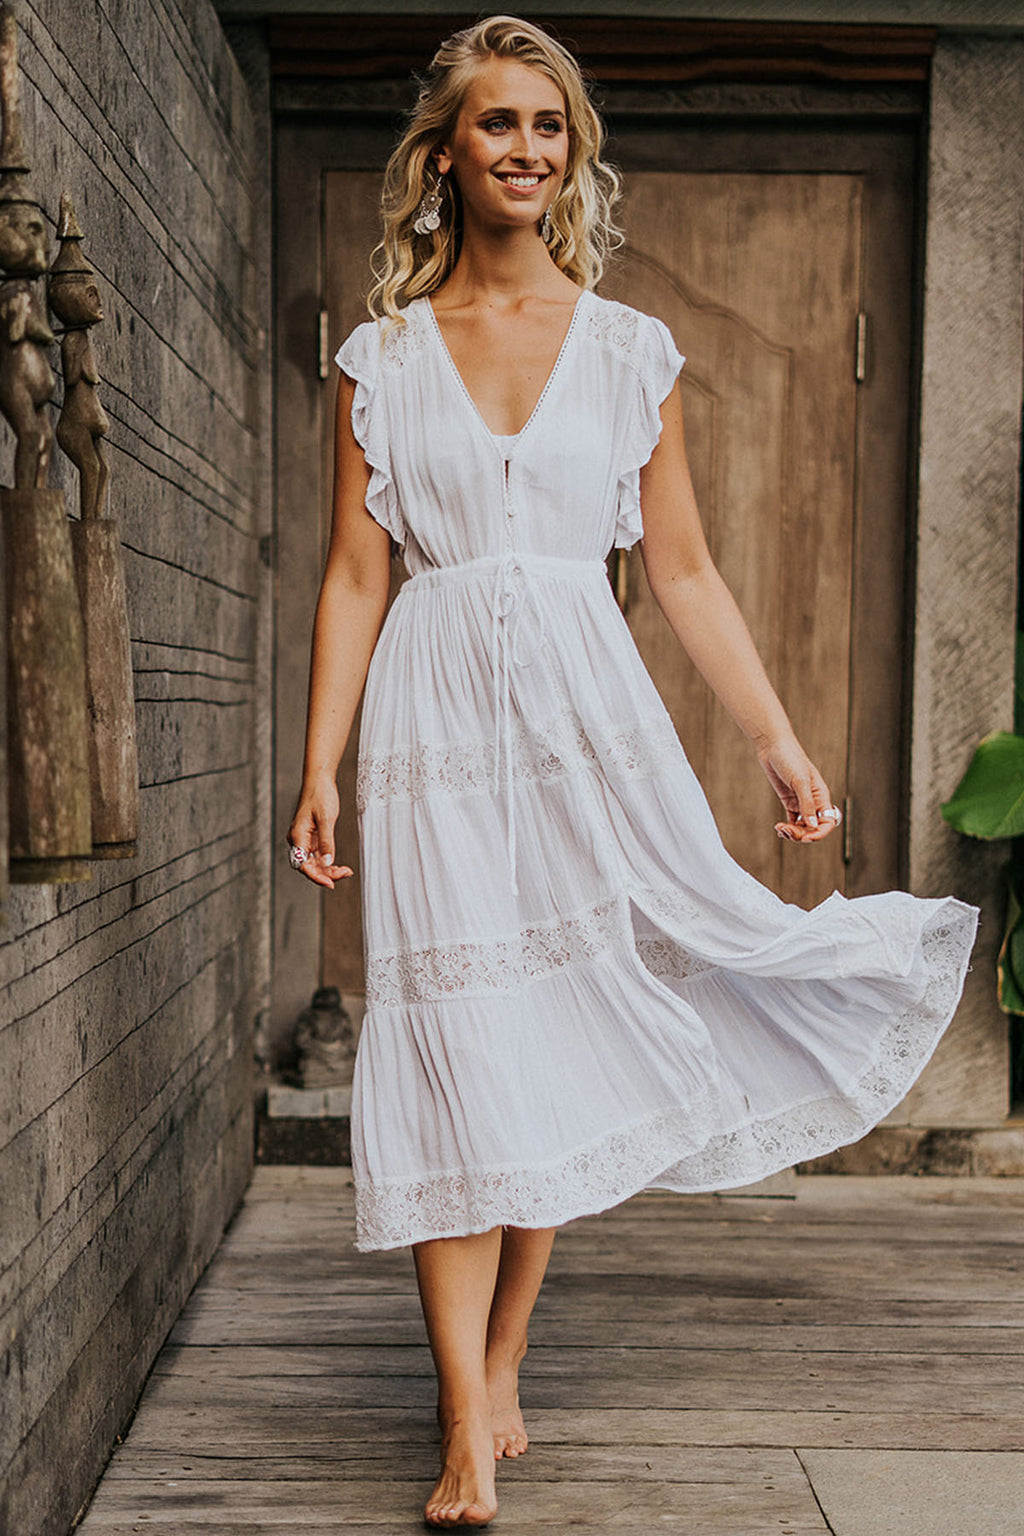 Summer Breeze Maxi Dress - White - The Bohemian Corner